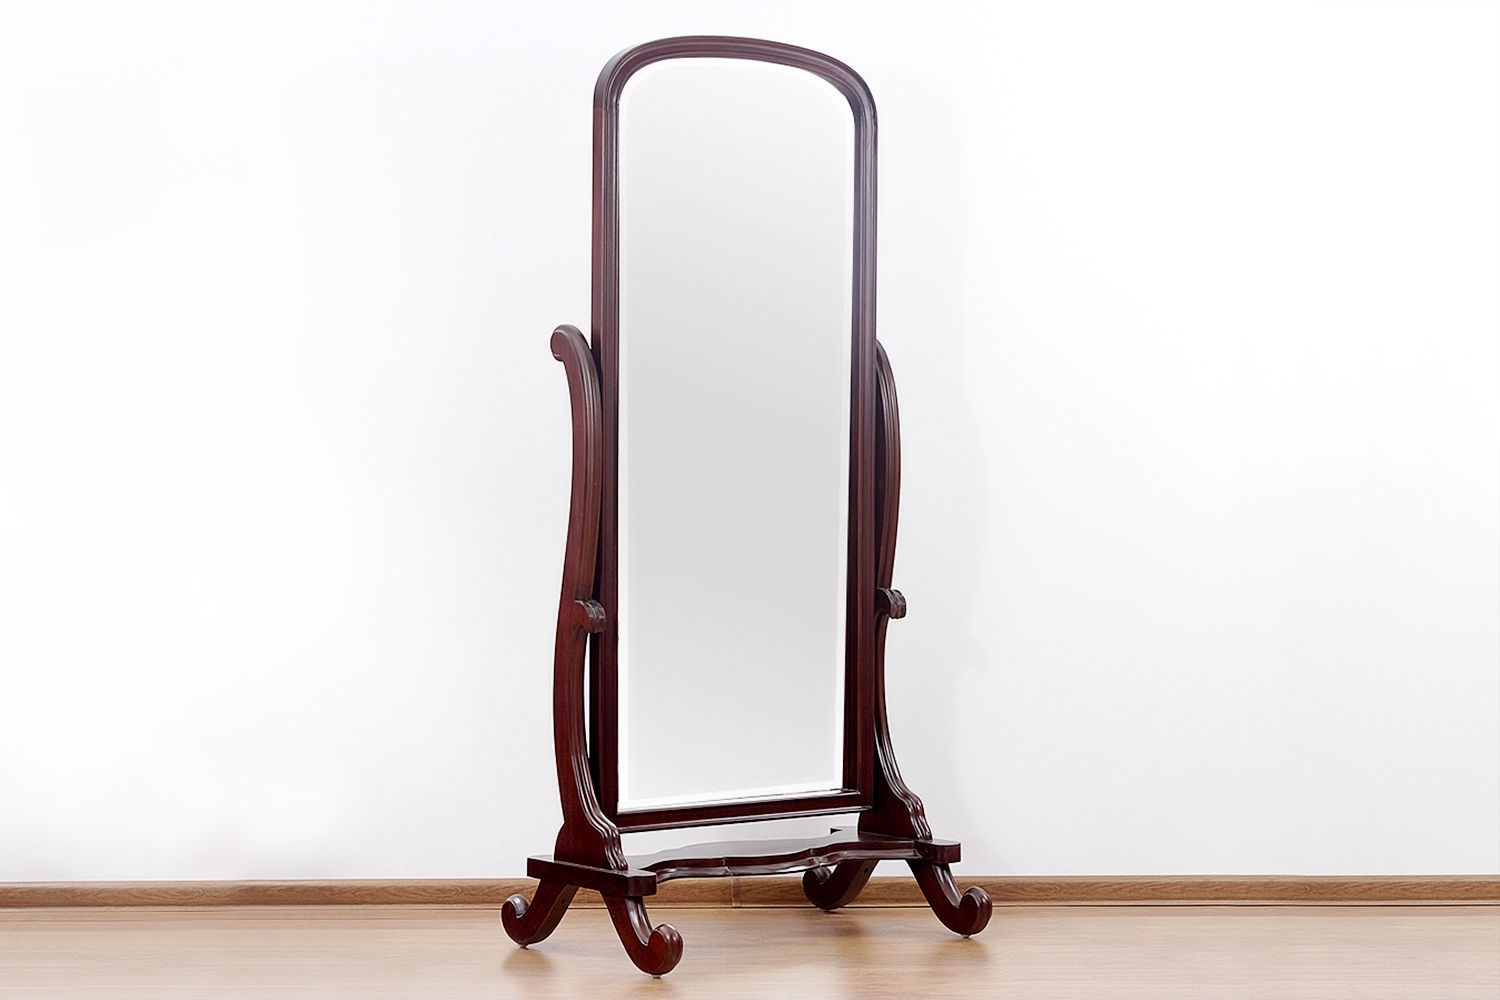 Victorian Period Standing Mirror Made Of Mahogany Wood Regarding Victorian Standing Mirror (Image 15 of 15)